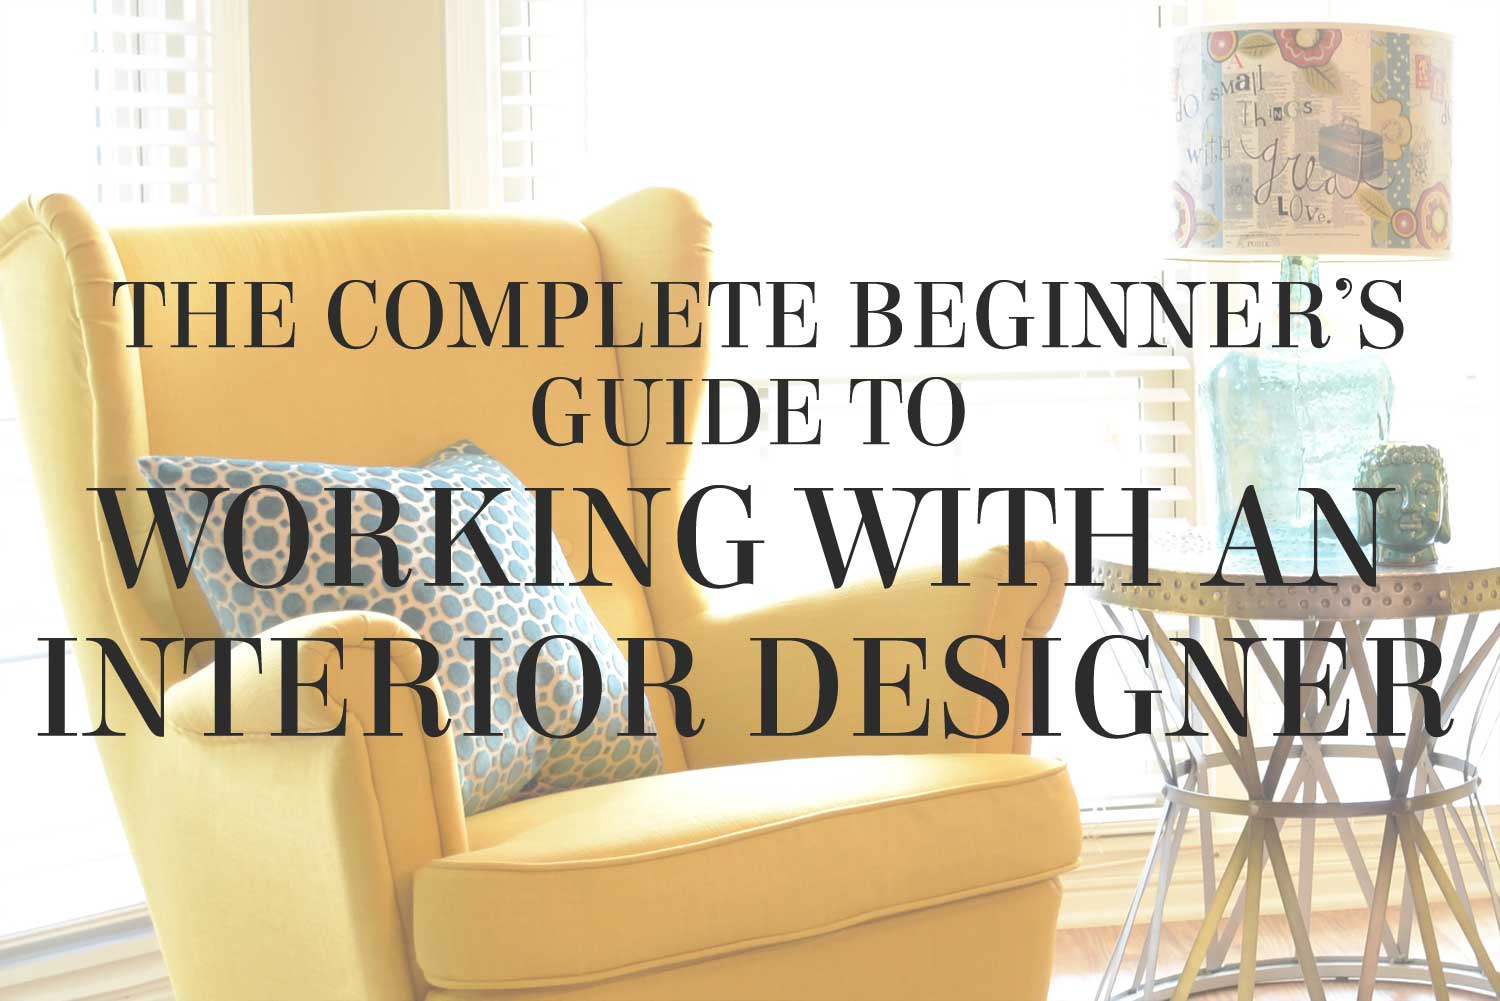 Interior Designer Tips The complete beginners guide to working with an interior designer the complete beginners guide to working with an interior designer tips from interior stylist lesley sisterspd